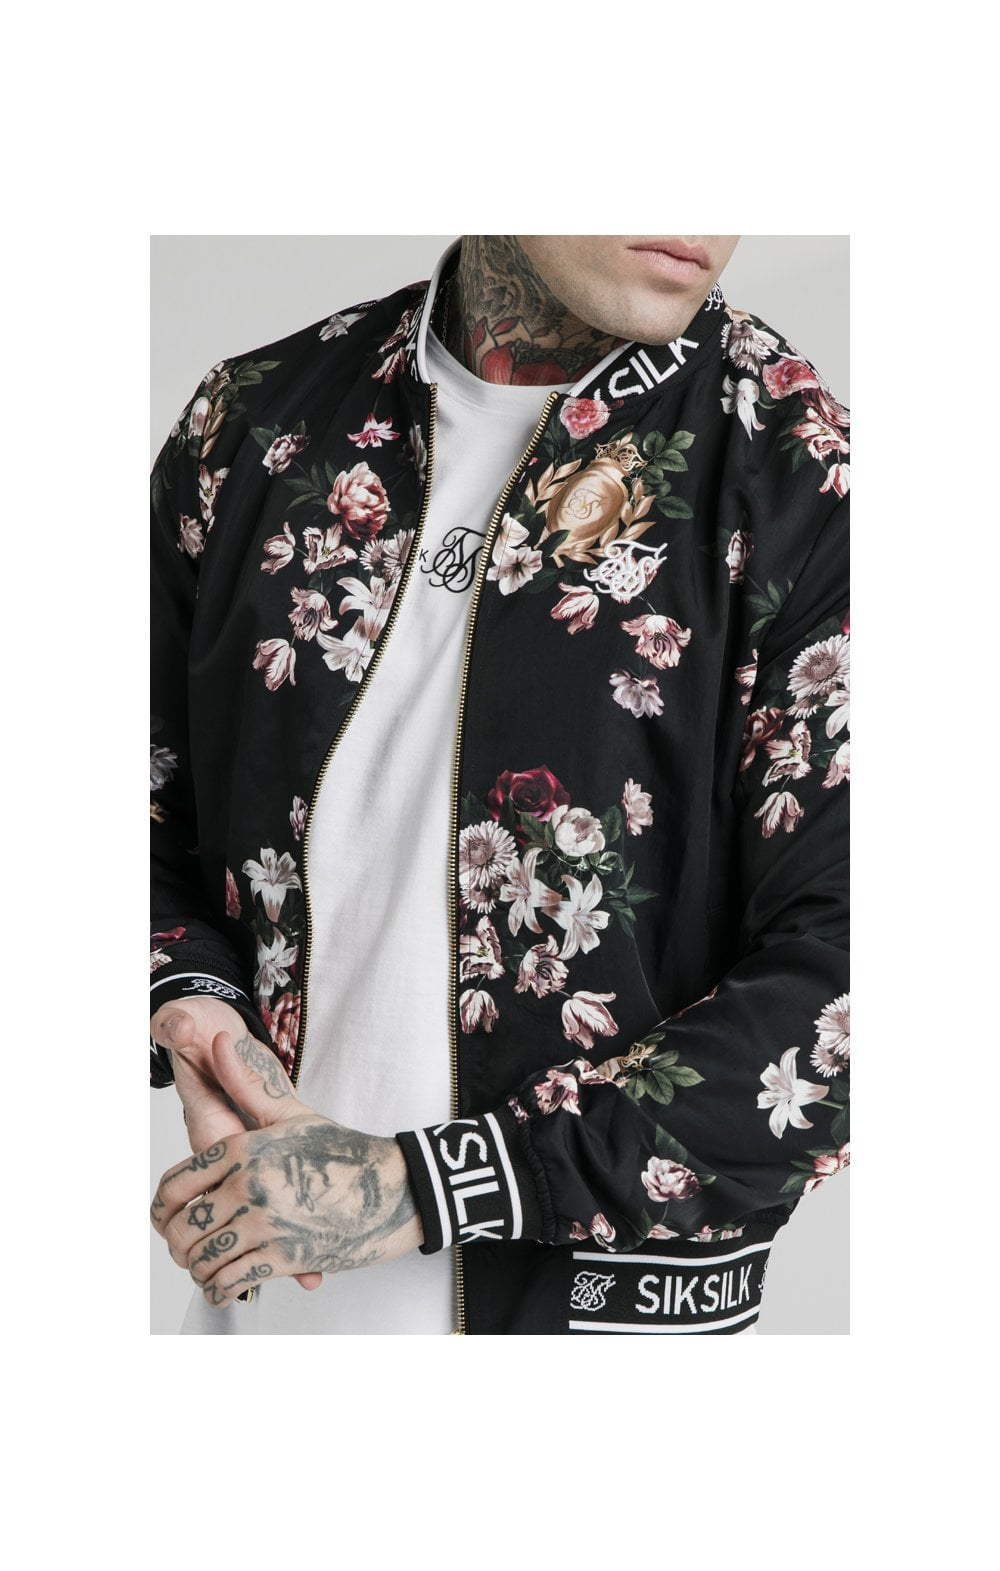 Load image into Gallery viewer, SikSilk Prestige Floral Bomber - Black (1)